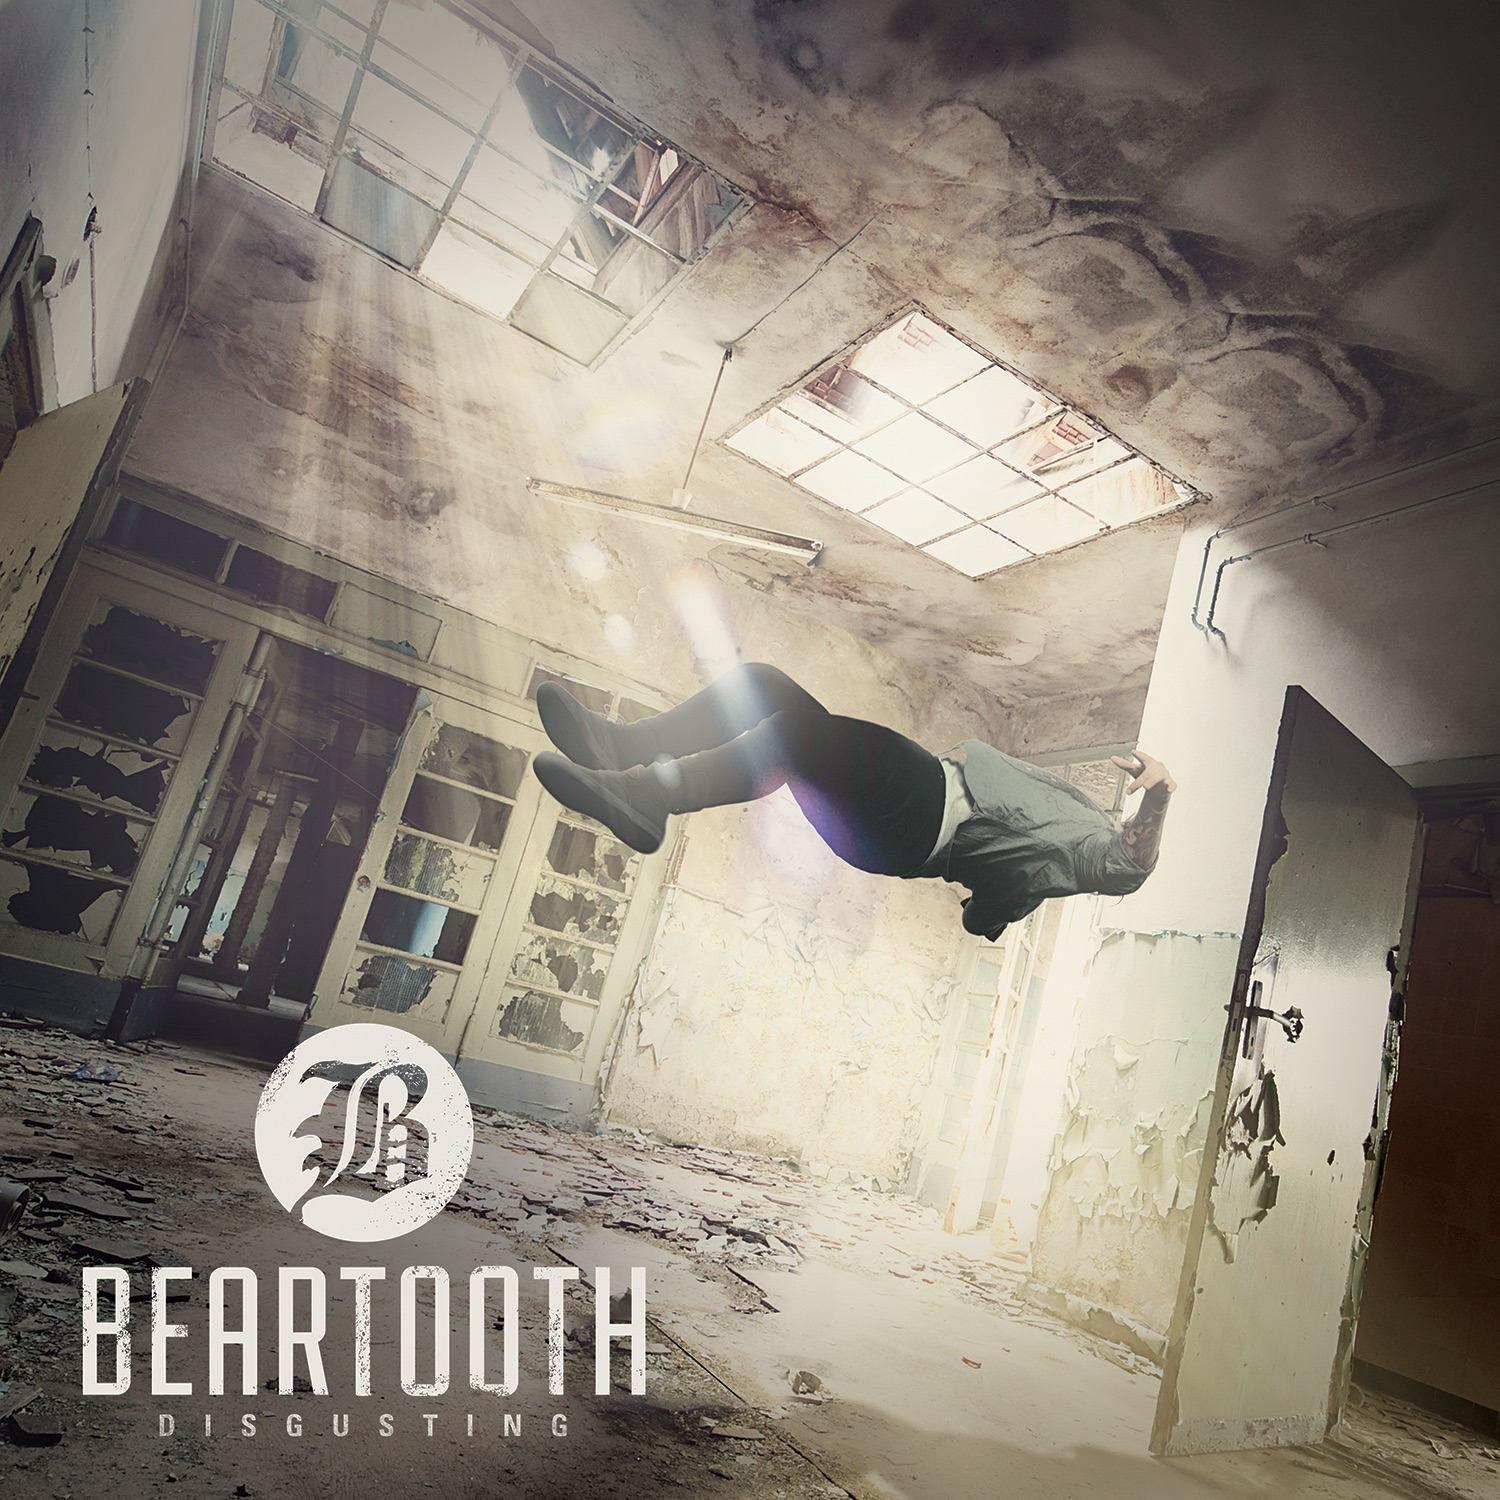 Beartooth - Disgusting (Deluxe Edition) (2015)